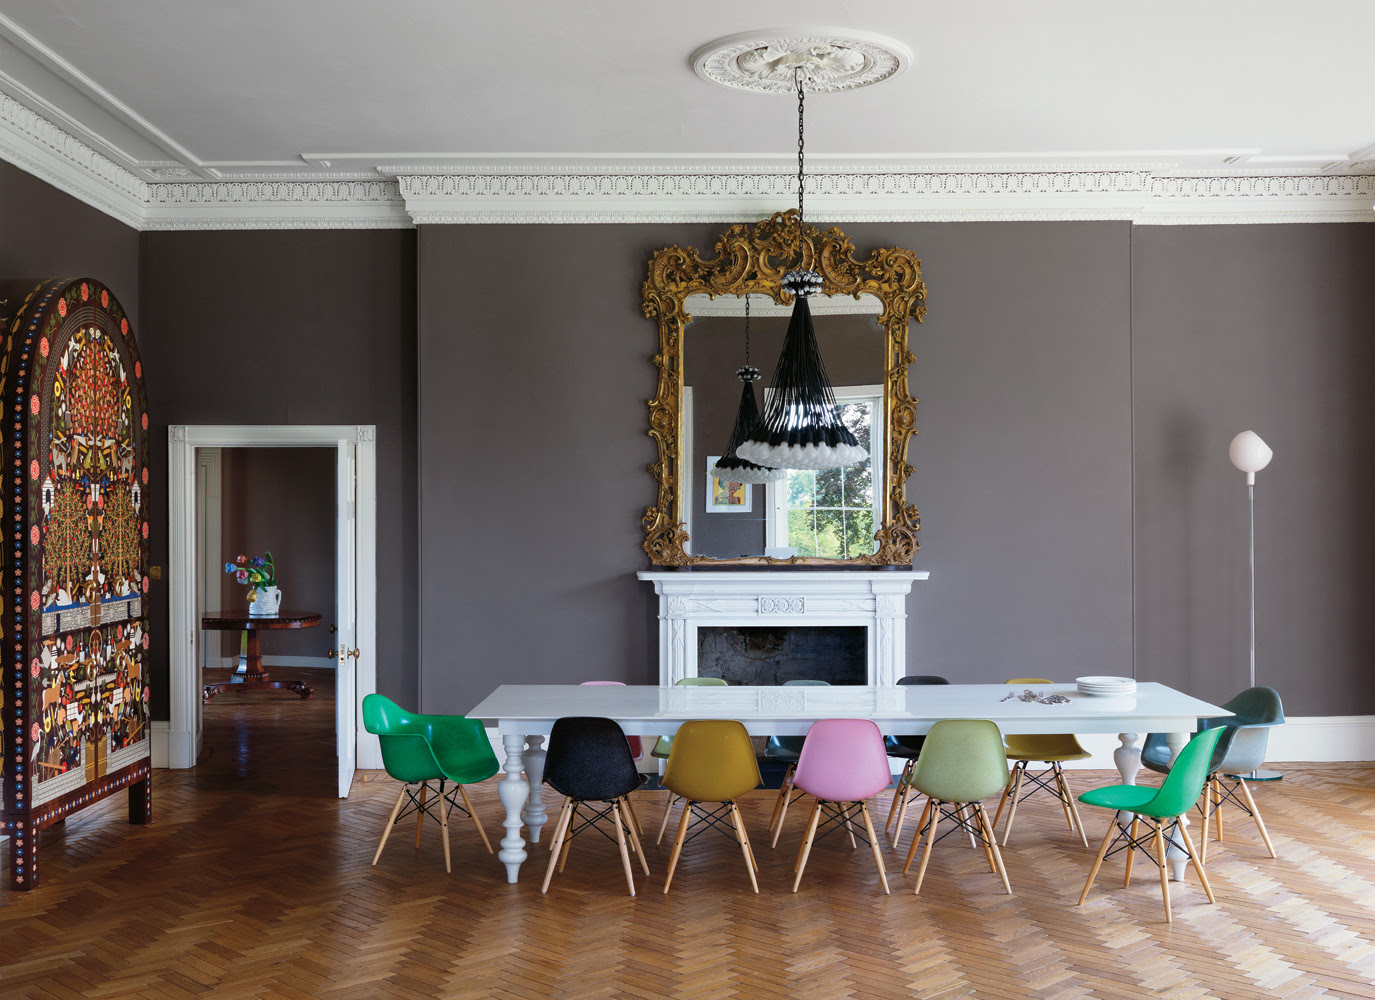 Eames Chairs | Black & White Colors